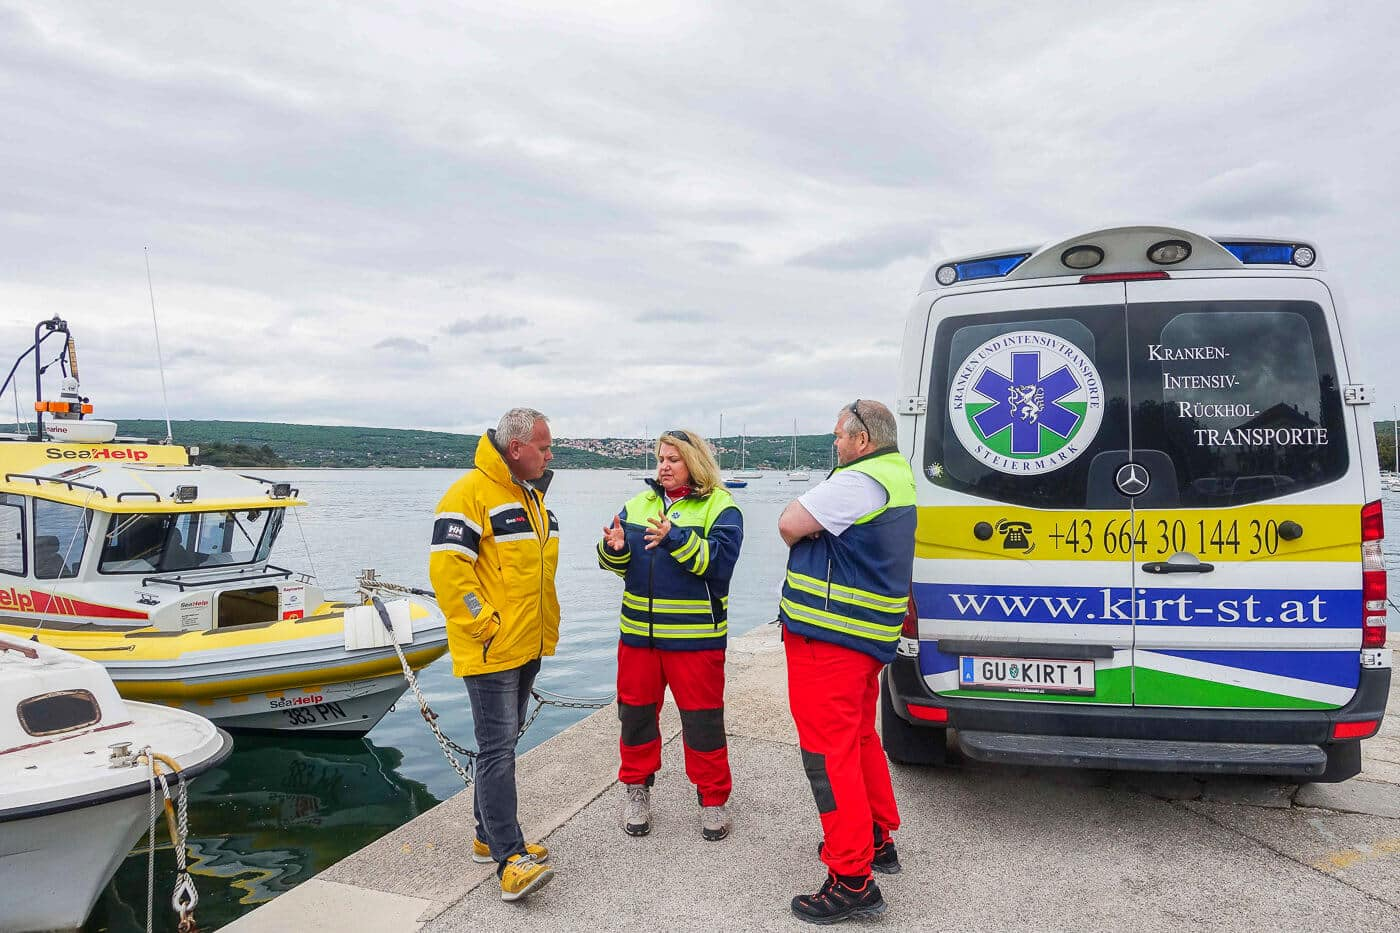 New SeaHelp cooperation partner Kirt-Steiermark helps with medical emergencies and problems on board